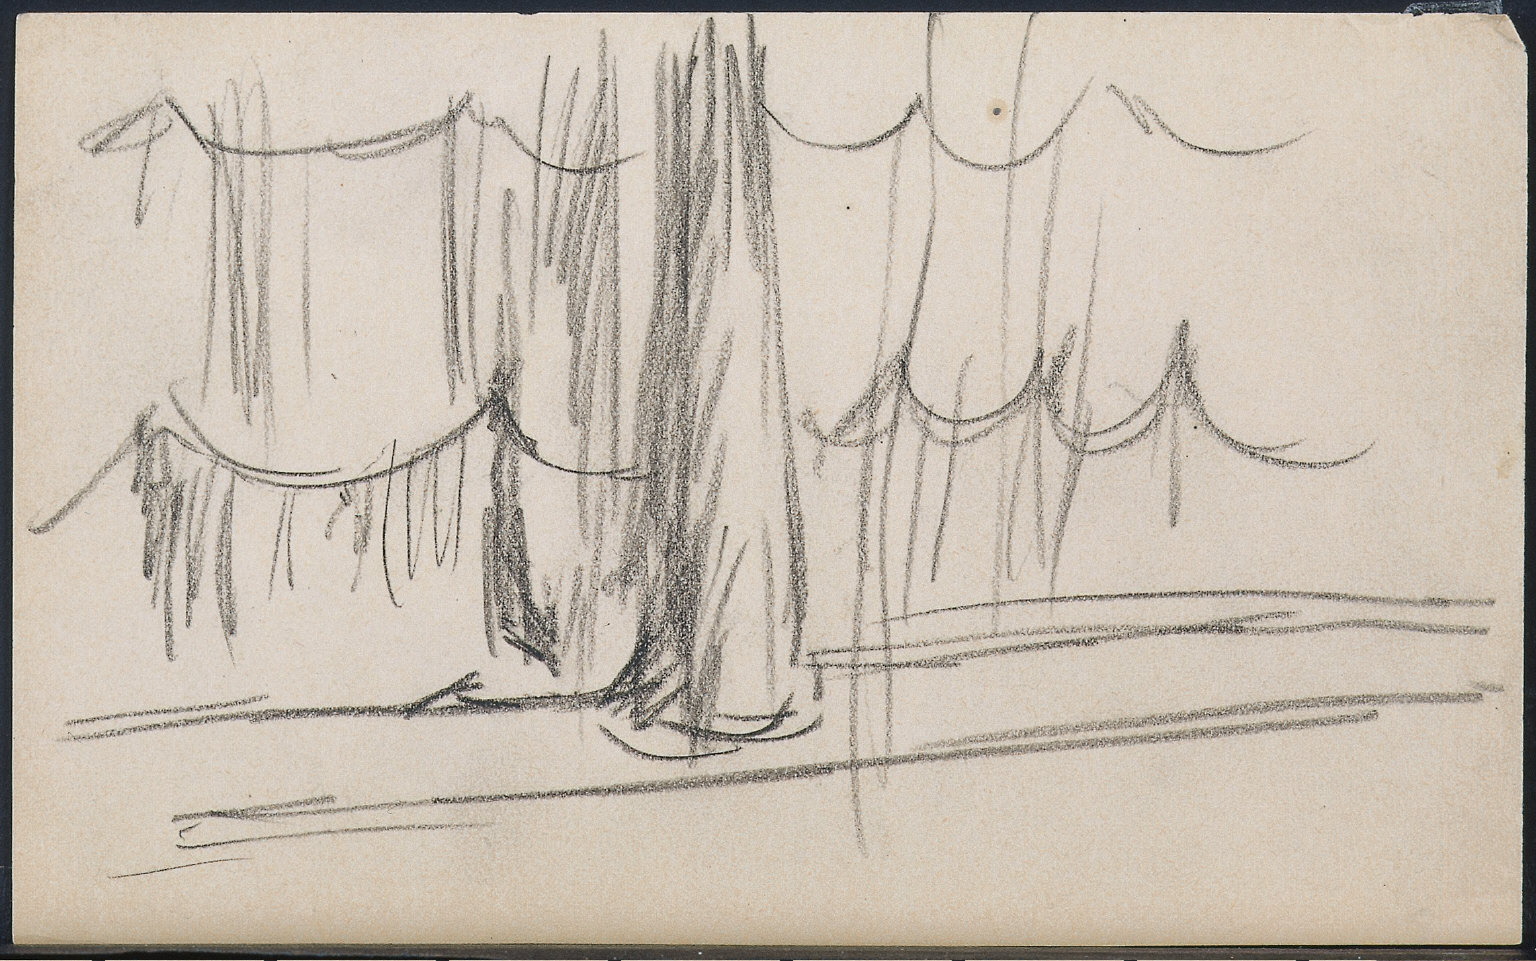 Study of a Theatre Curtain - for Girlie Show